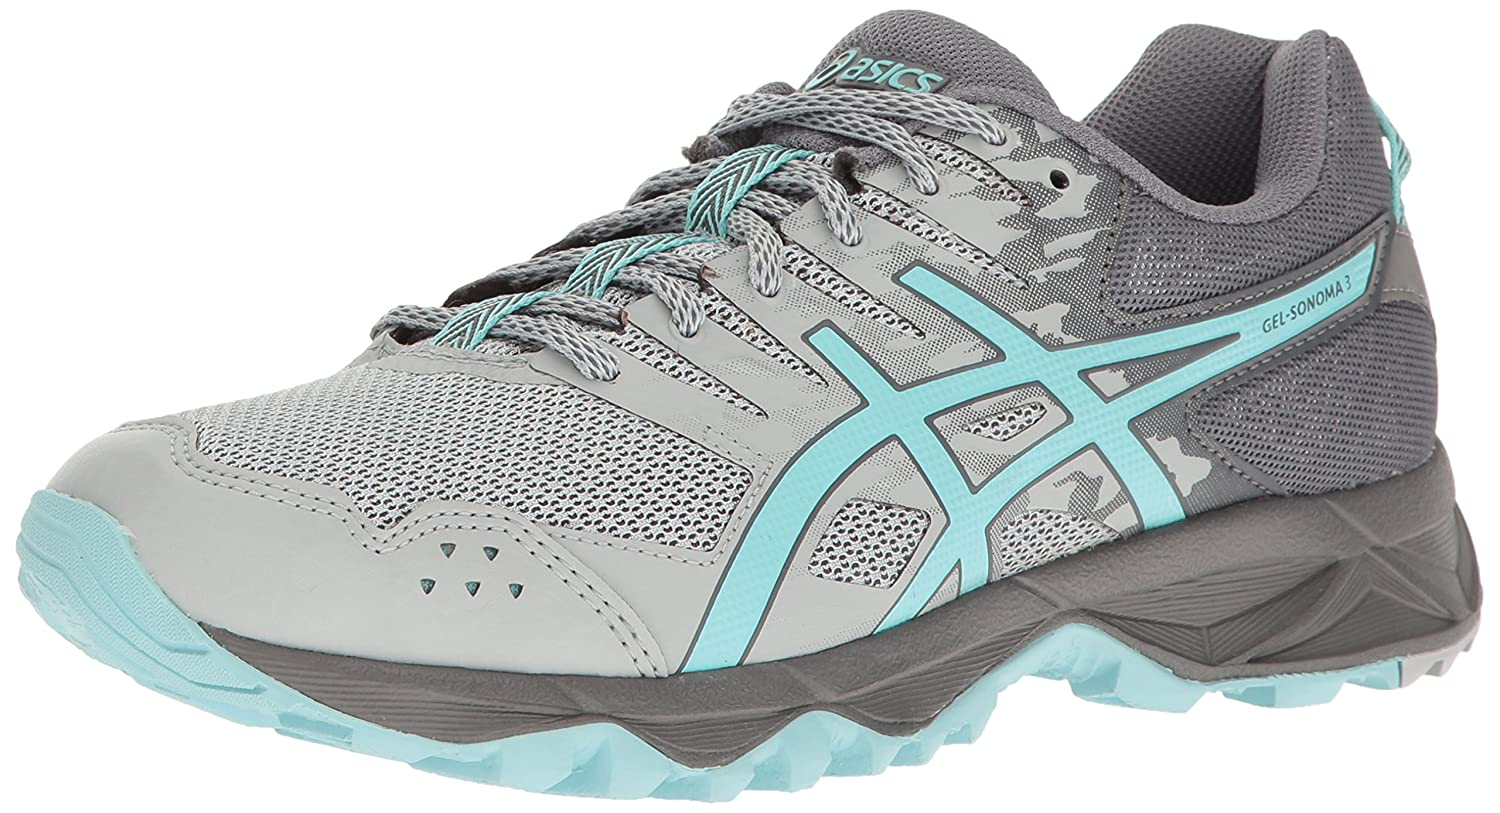 ASICS Women's Gel-Sonoma 3 Trail Runner B01GUF87TO 8.5 B(M) US|Mid Grey/Aqua Splash/Carbon